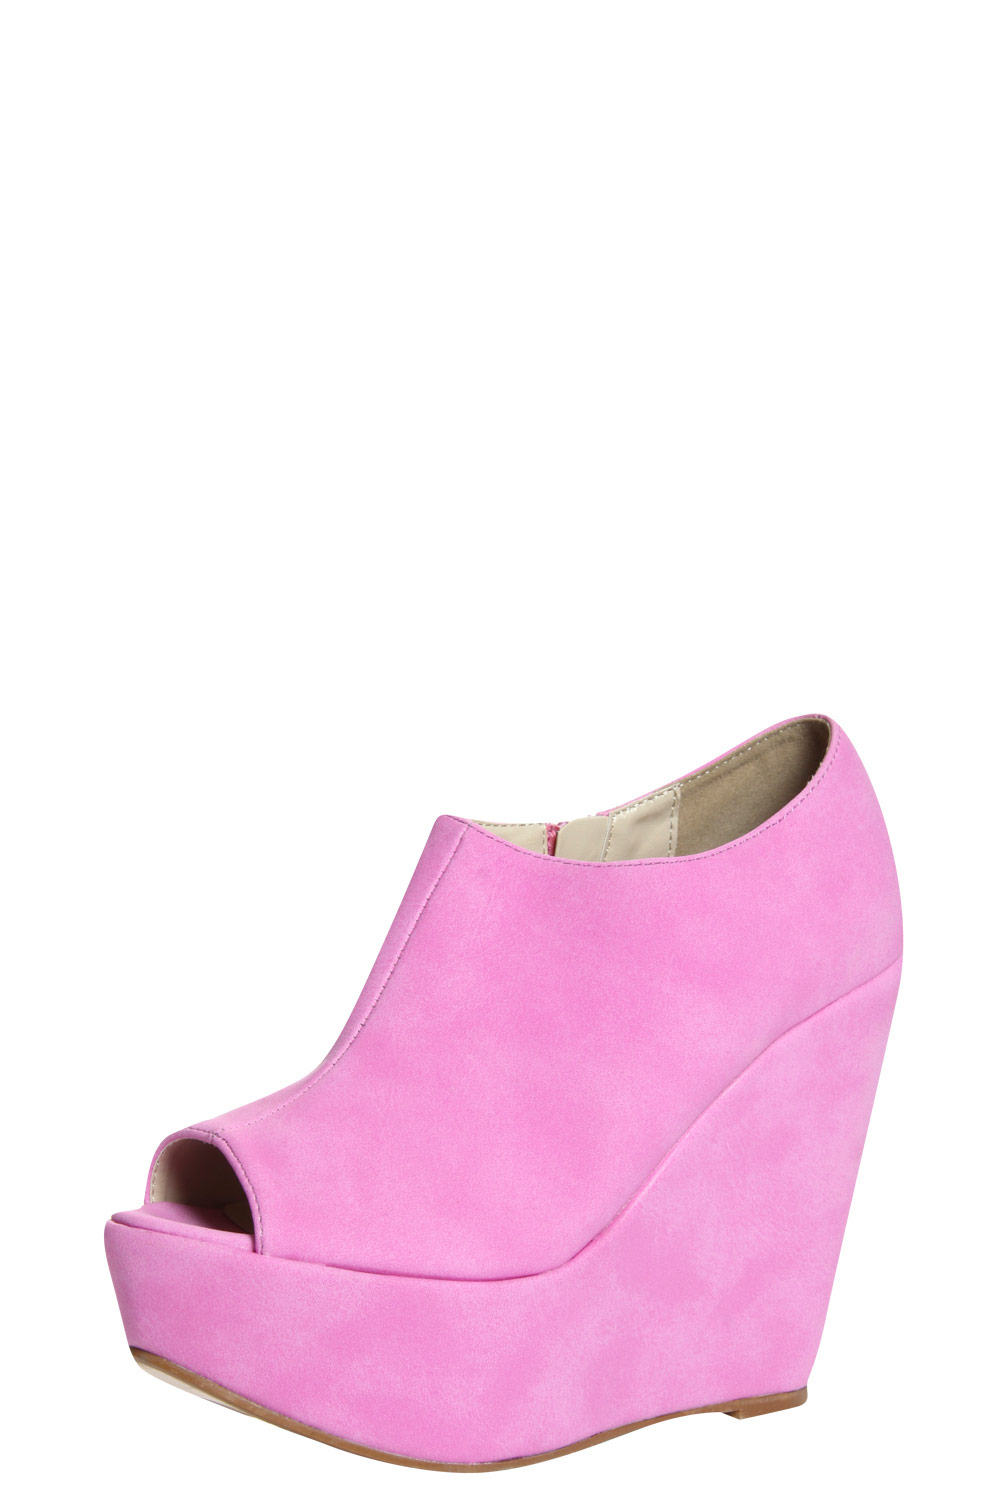 boohoo thalia lilac leather look wedge shoe boots in lilac